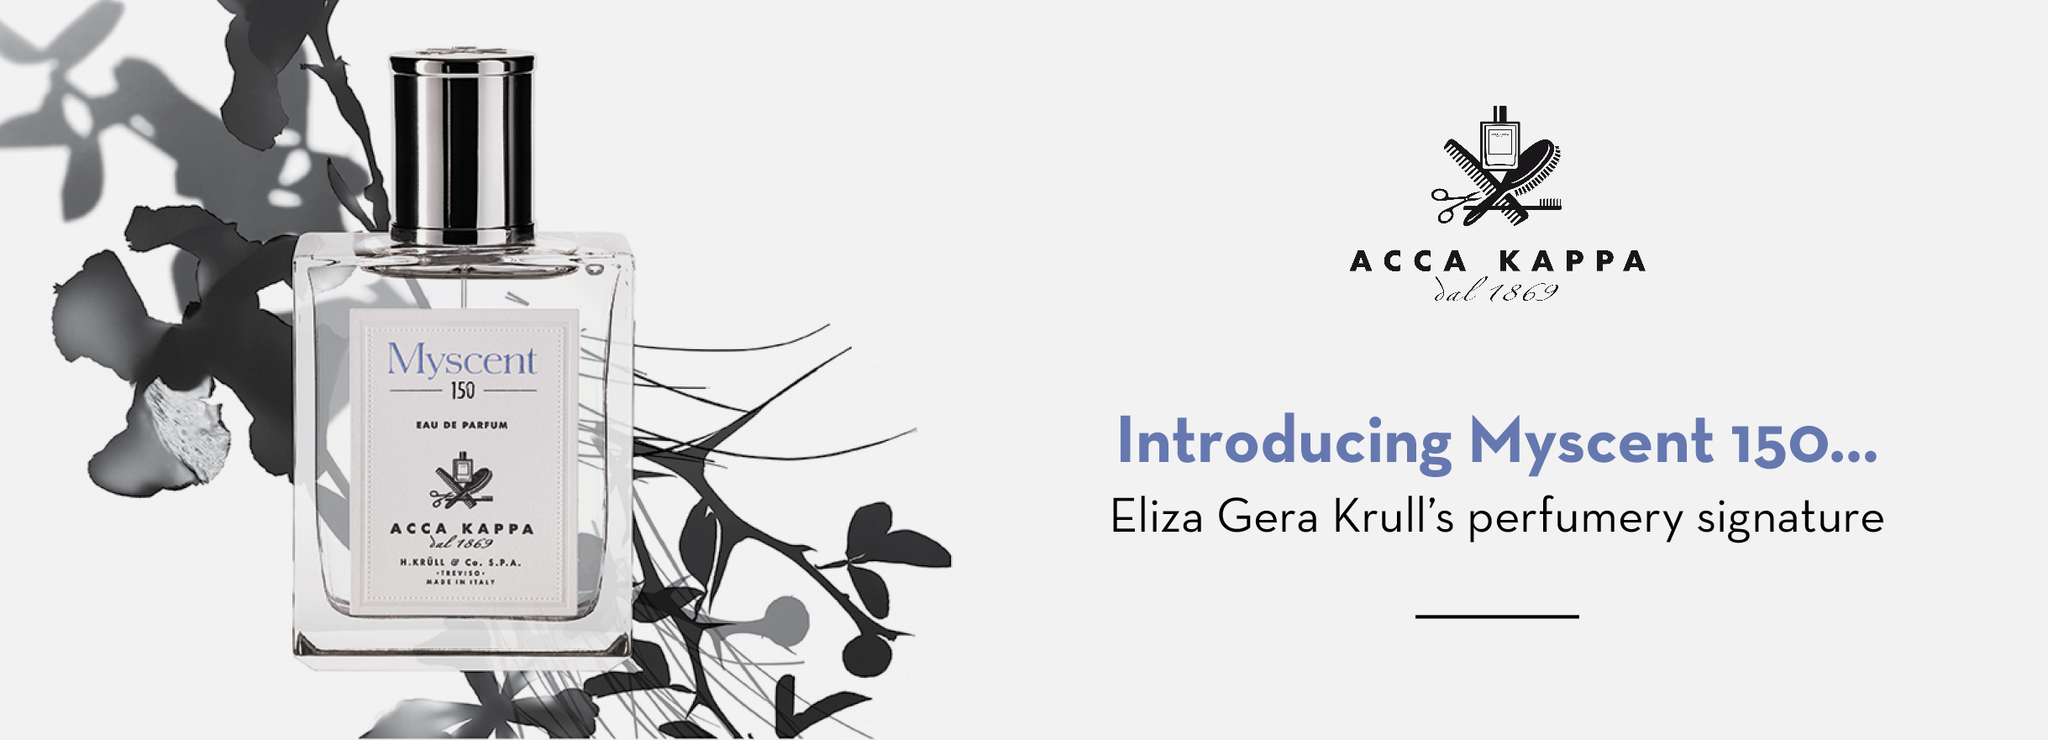 Introducing MyScent 150... Eliza Gera Krull's Signature